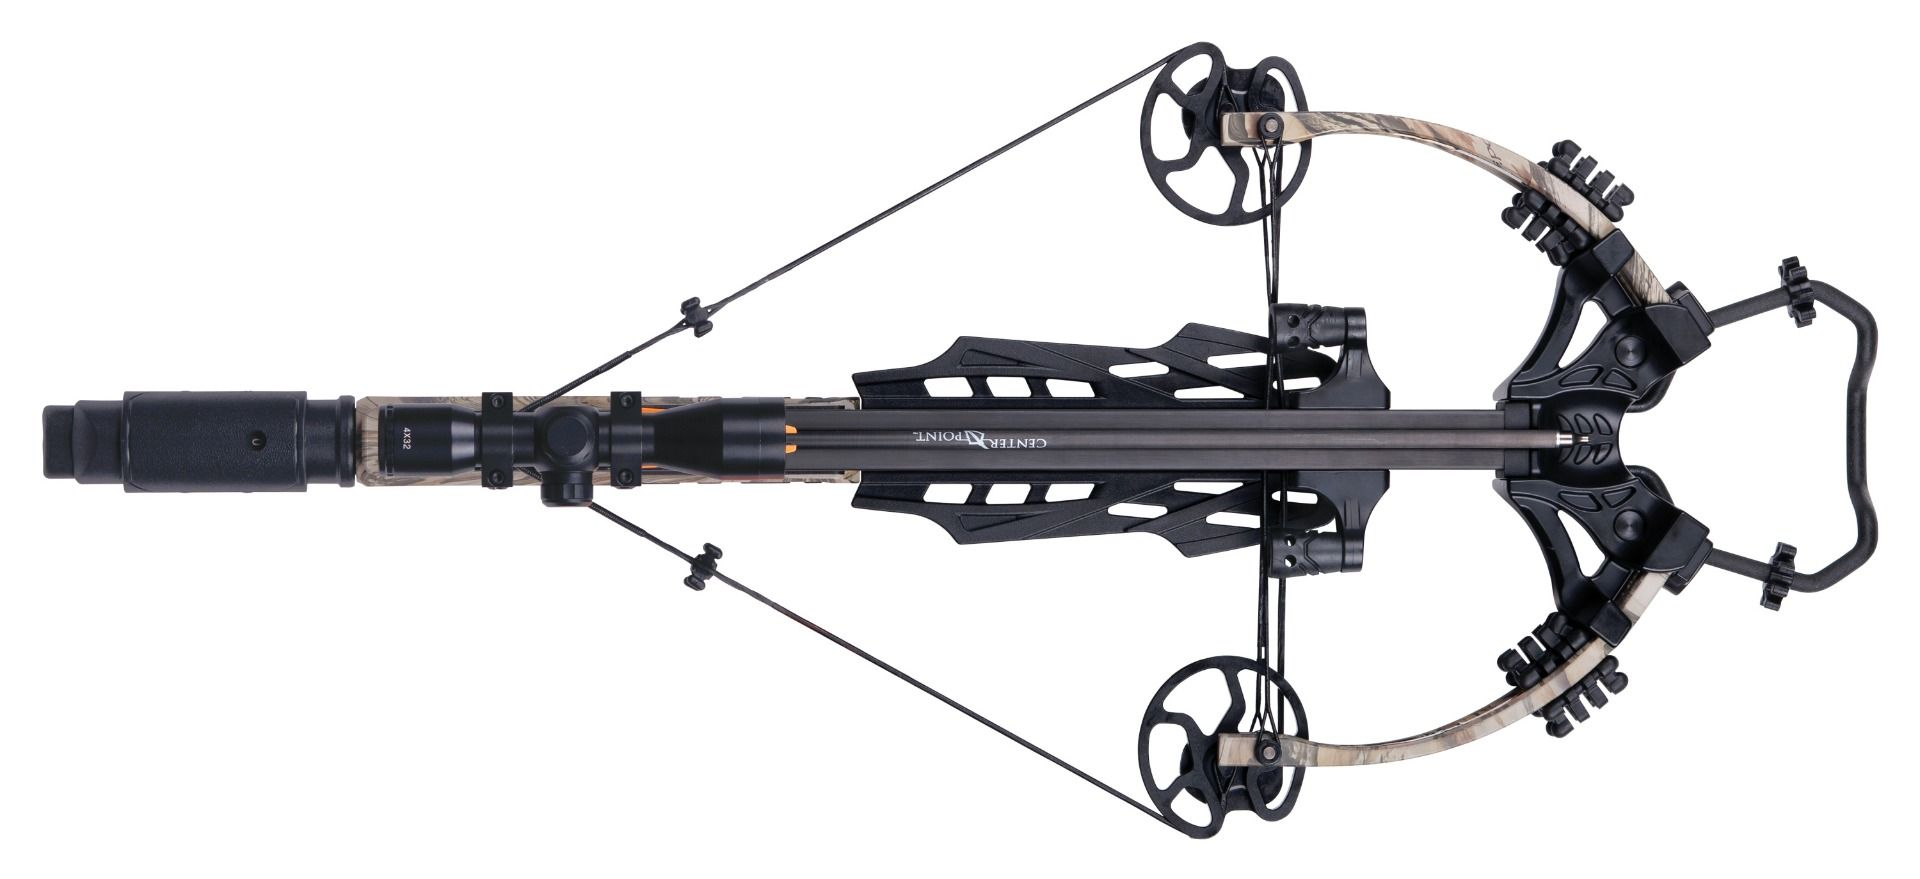 CenterPoint Heat 415 crossbow from top